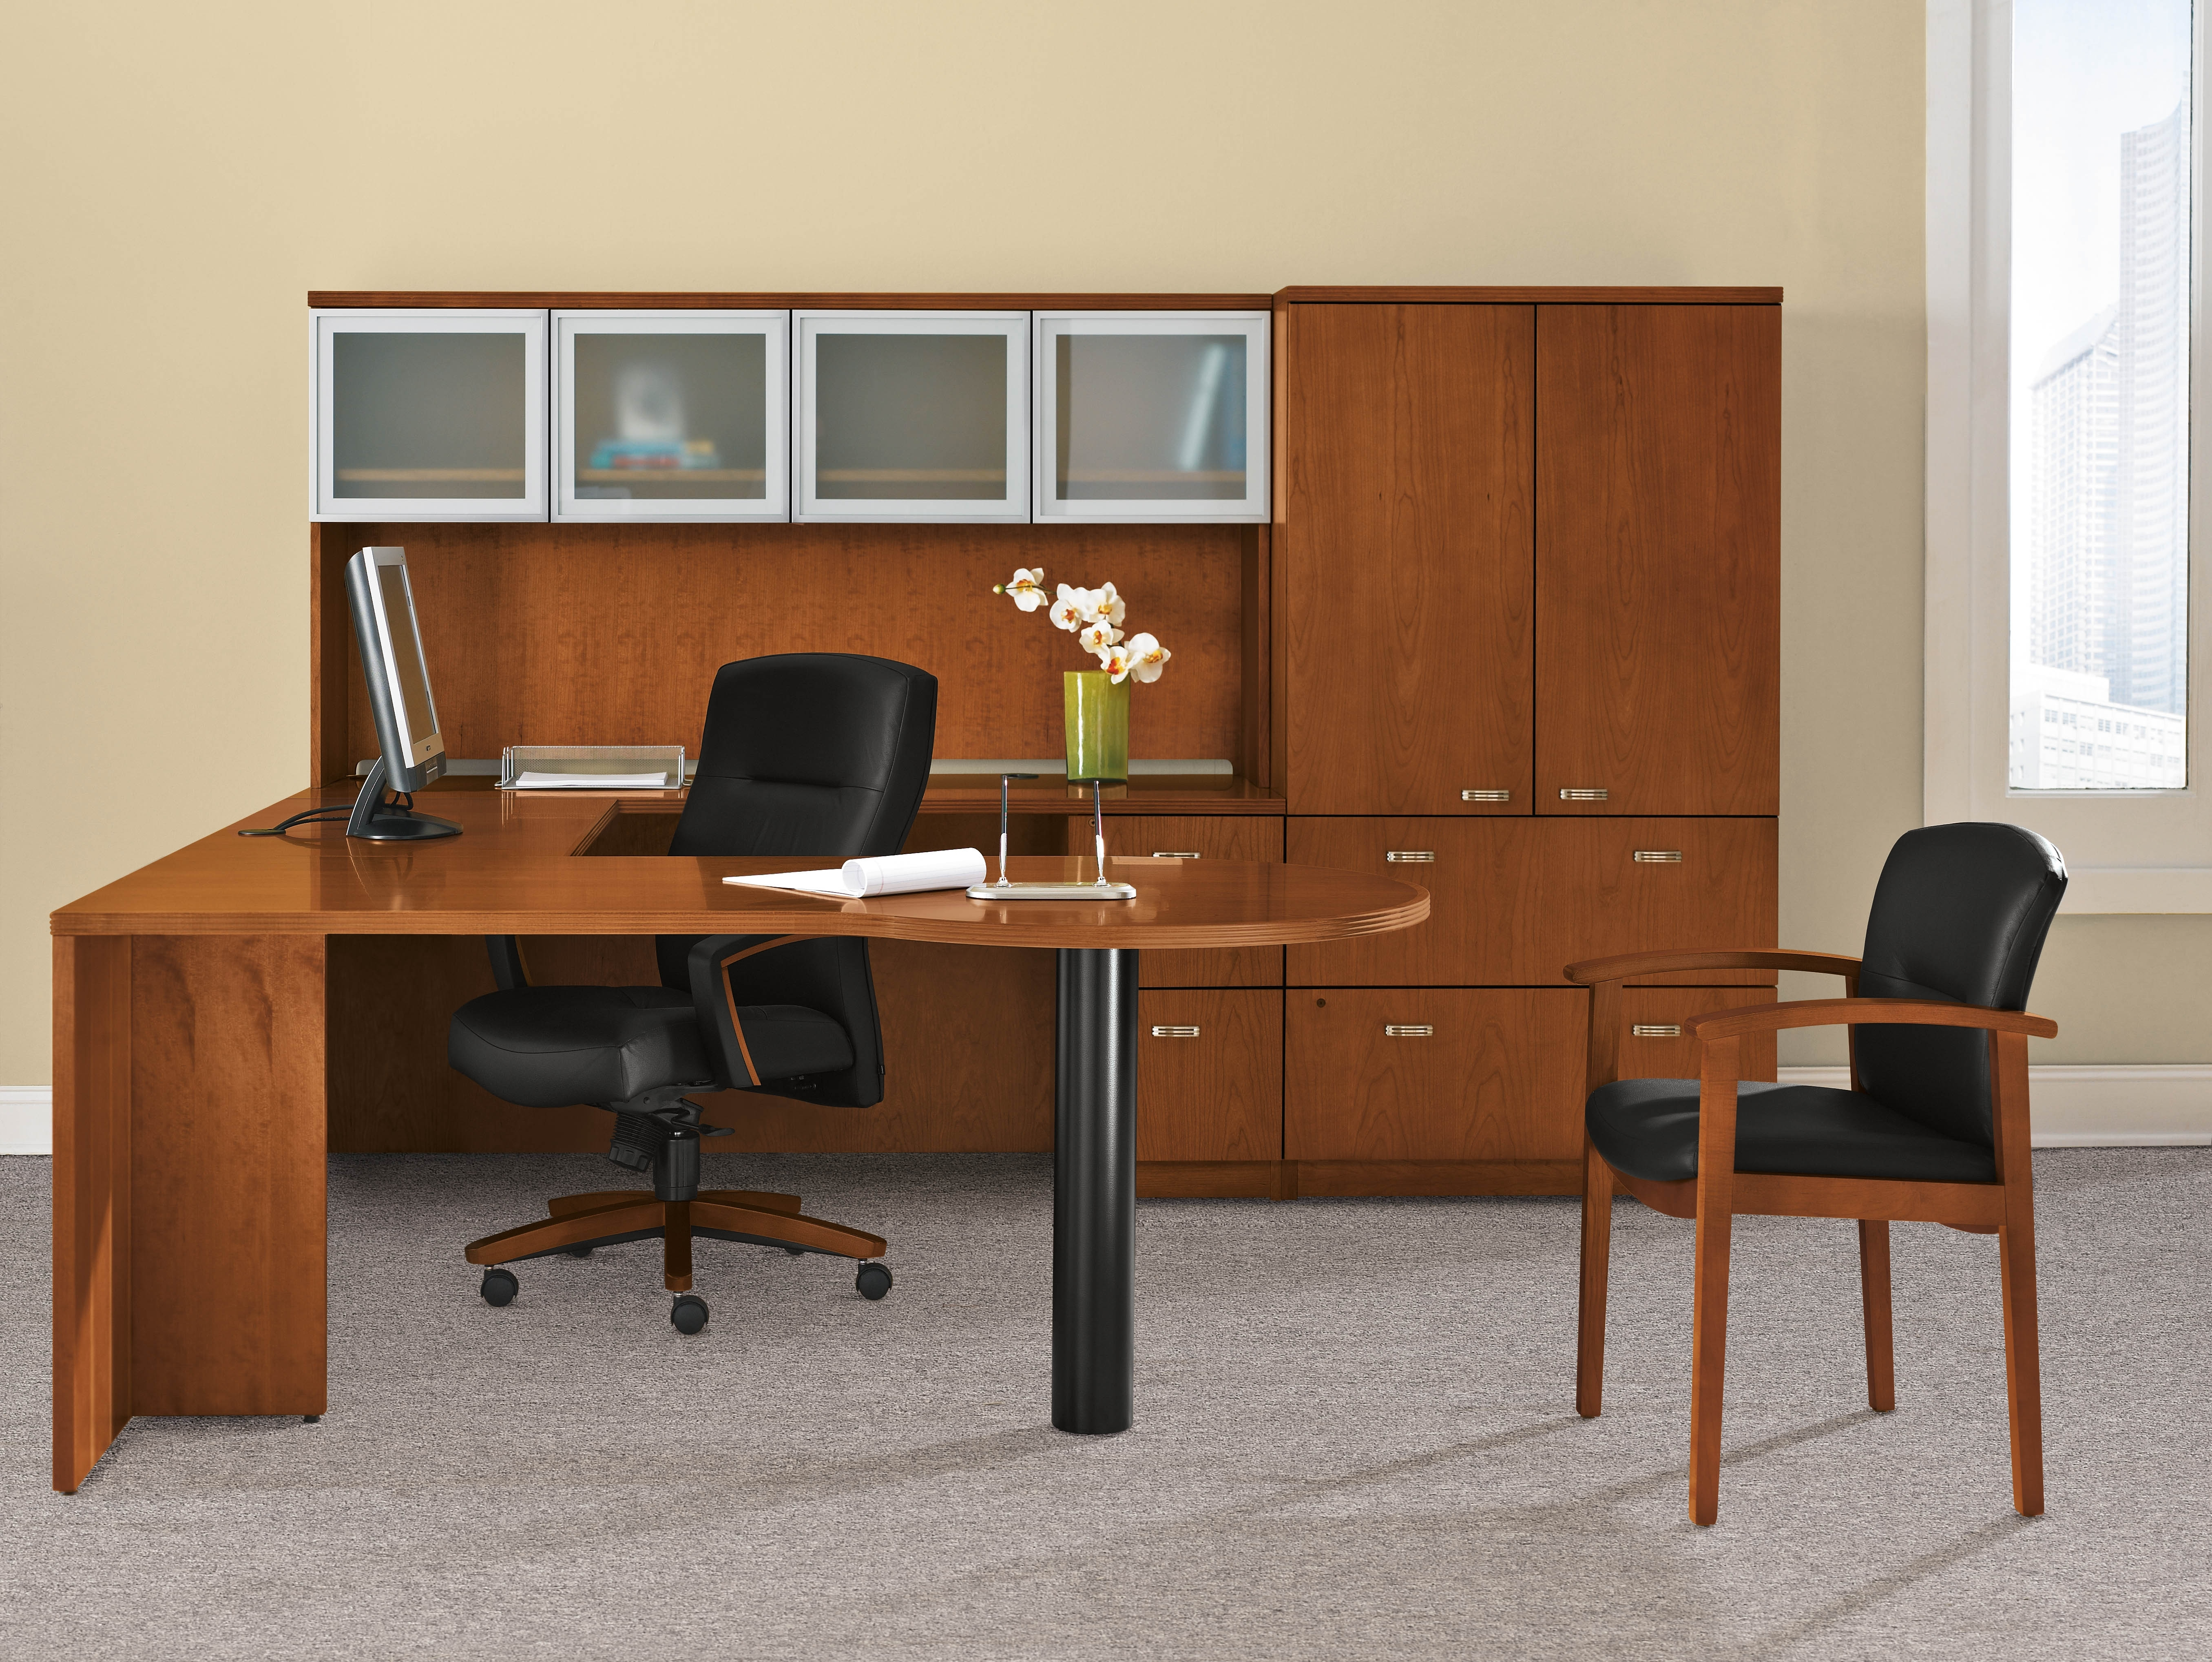 Hon Executive Office Chairs Throughout 2019 Executive Desks Cincinnati, Executive Office Furniture Cincinnati (View 15 of 20)